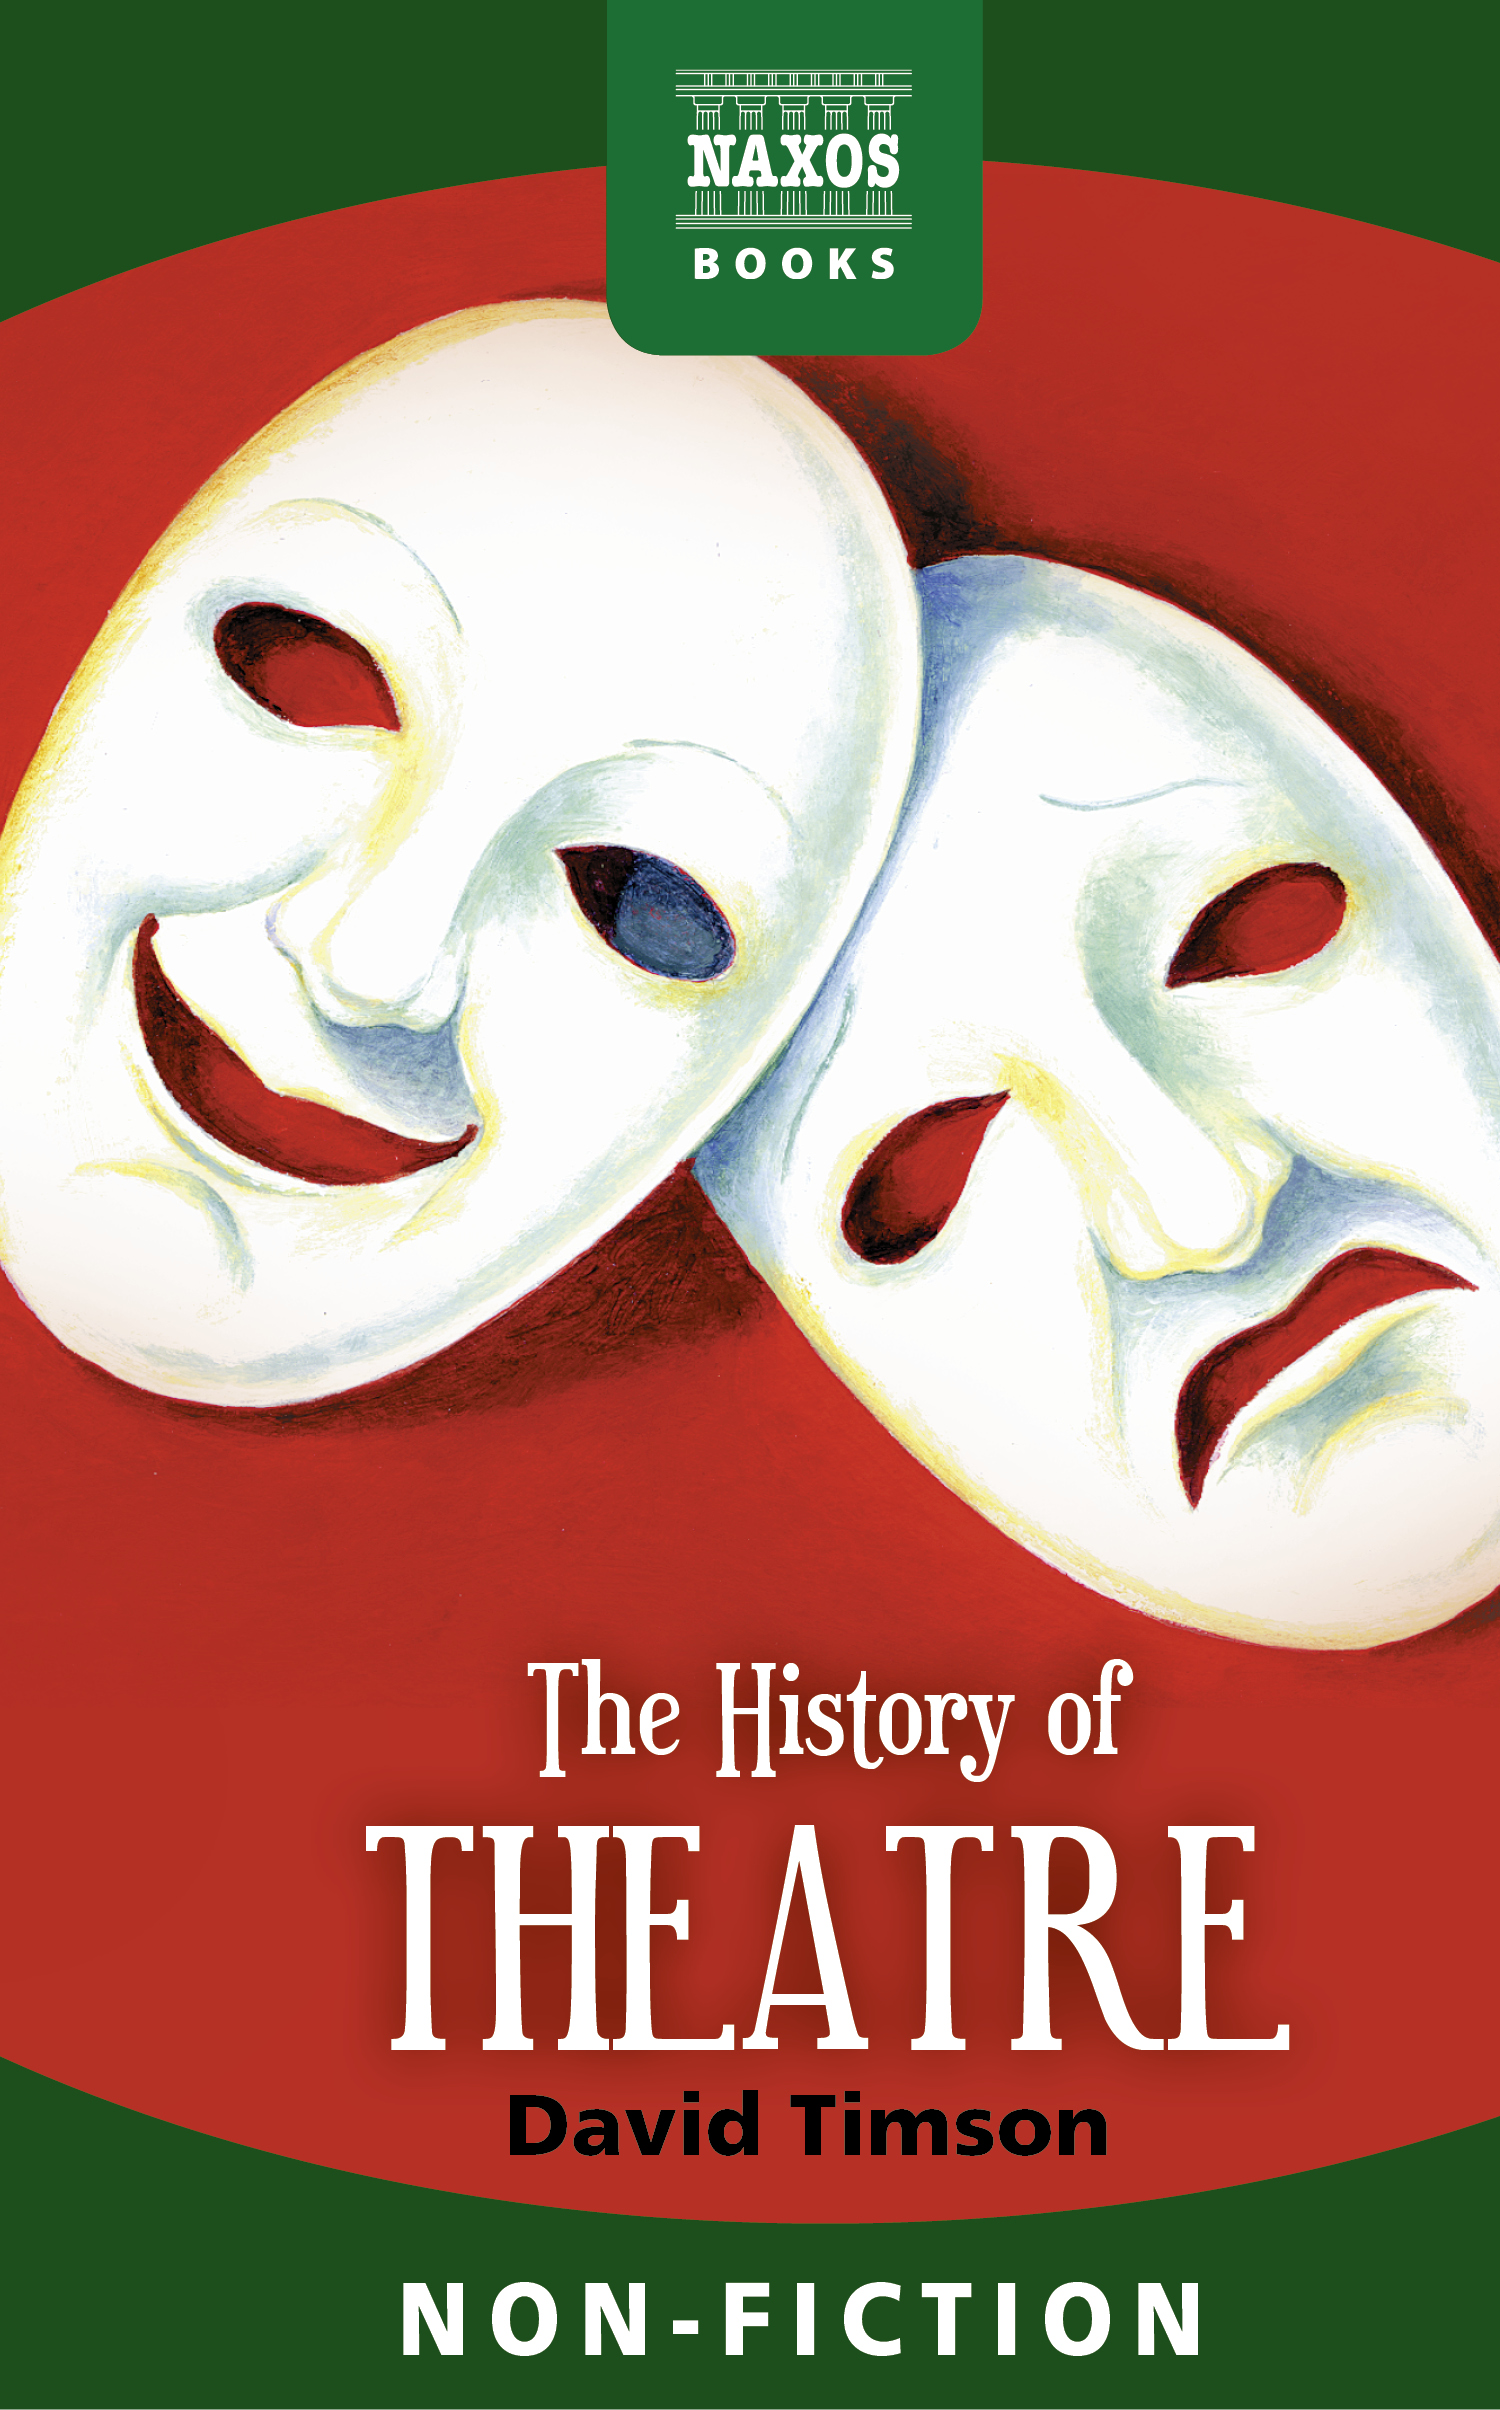 The History of Theatre By: David Timson